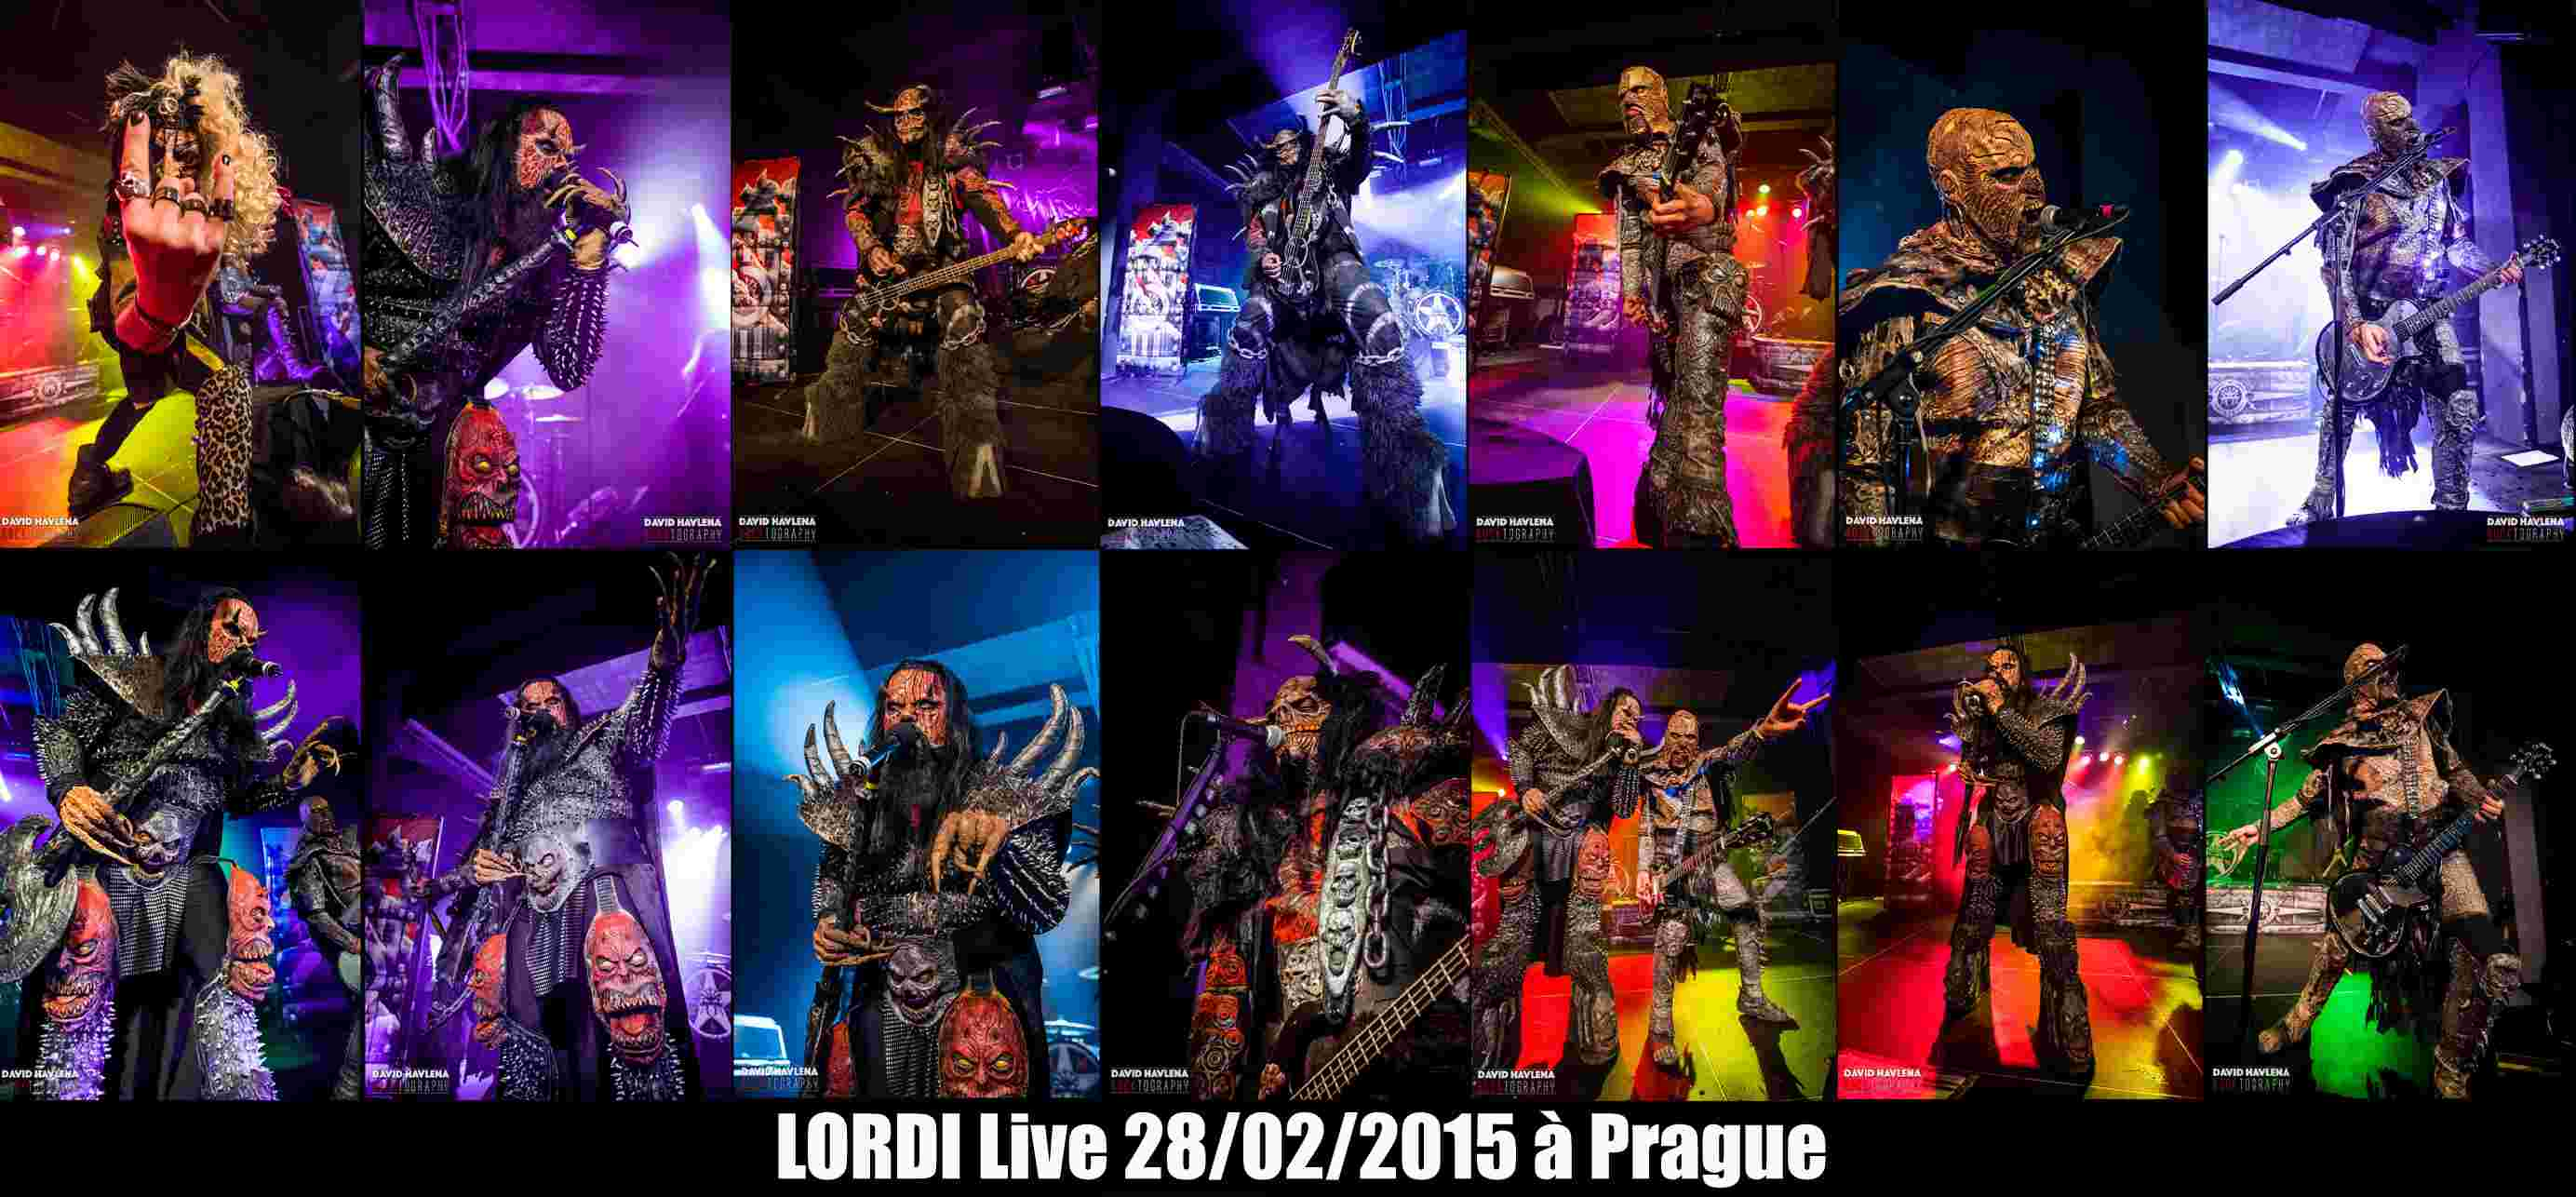 Mes petits montages photos ... - Page 6 Lordi_10